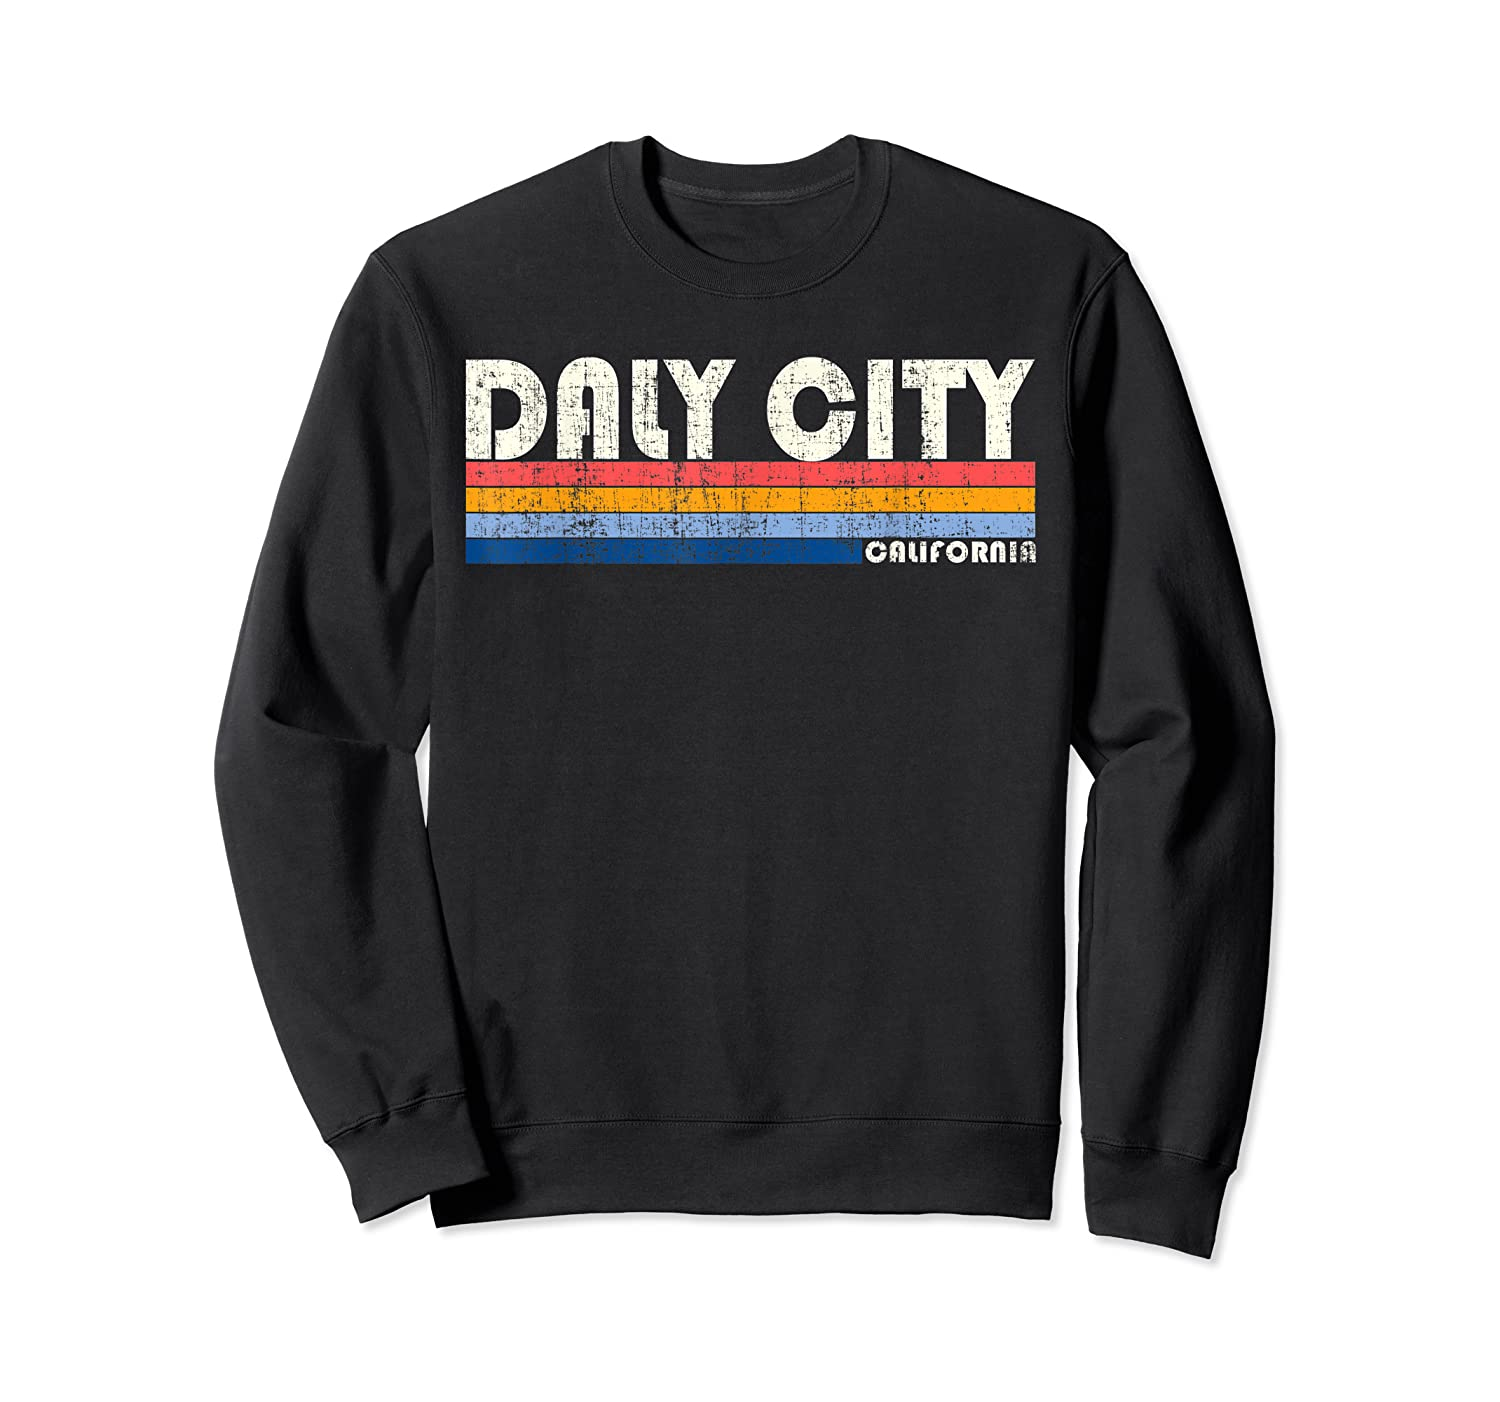 Vintage 70s 80s Style Daly City Ca T Shirt Crewneck Sweater